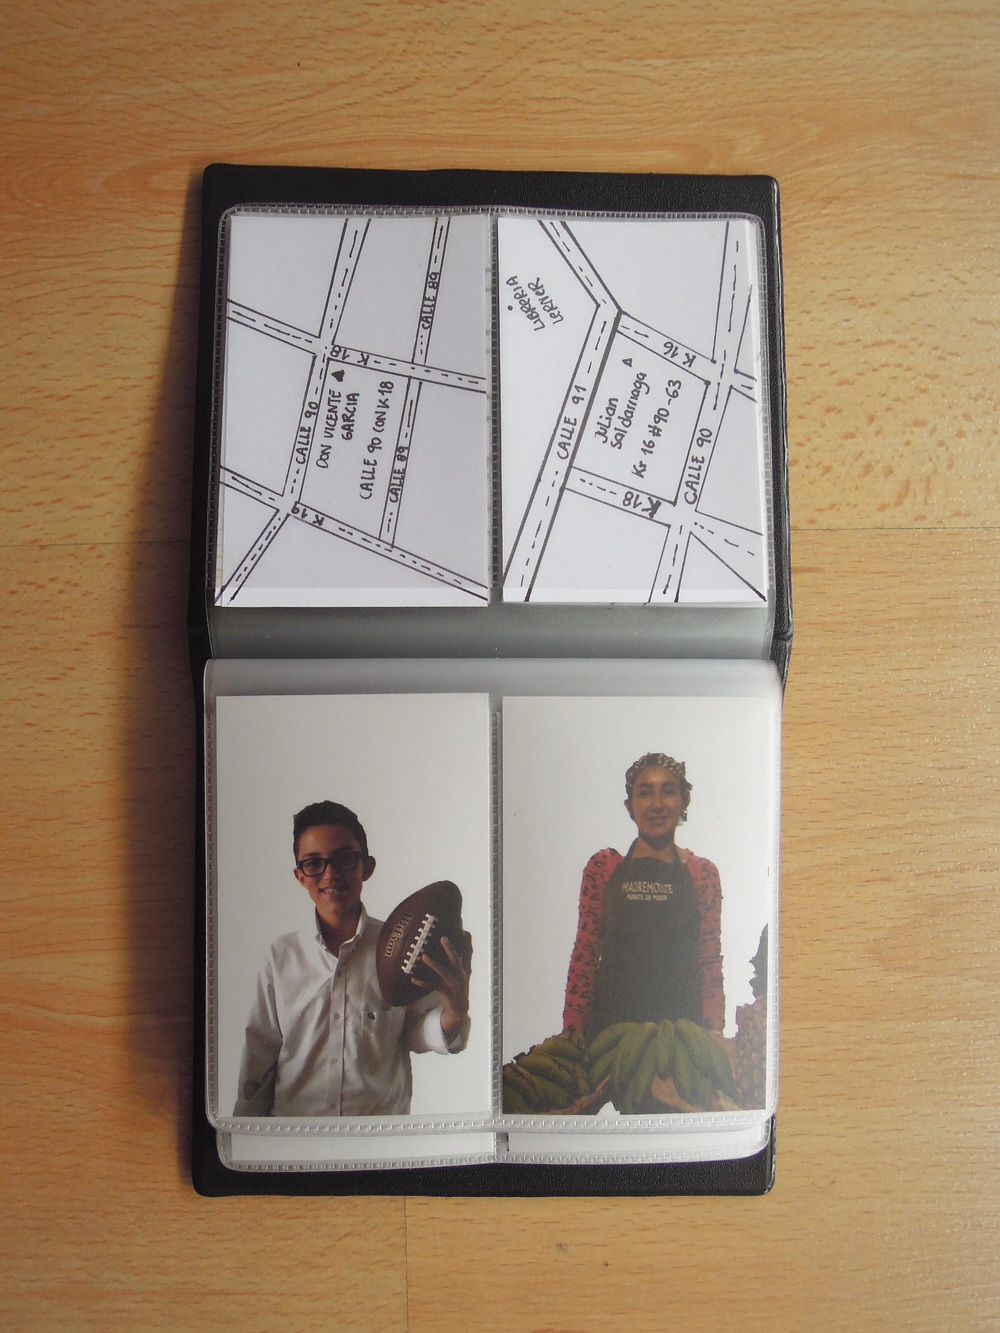 Juliana Galvis - Virrey, Tadeo, Carabelas, 2015. Juliana developed a human cartography based on her journeys across the three different neighborhoods she frequents the most. For her, these linear paths are defined by the people who demark the territory: fruit vendors, locals at coffee shops etc. She devoleped a series of trading cards presenting portrait photographs, where the subjects are removed from the context, and a cartographic drawing of their location on the back of the card. She also created an installation suggesting the crossing of her journeys, connecting the cards using threads and presenting this as personal maps of her own experience in the city.